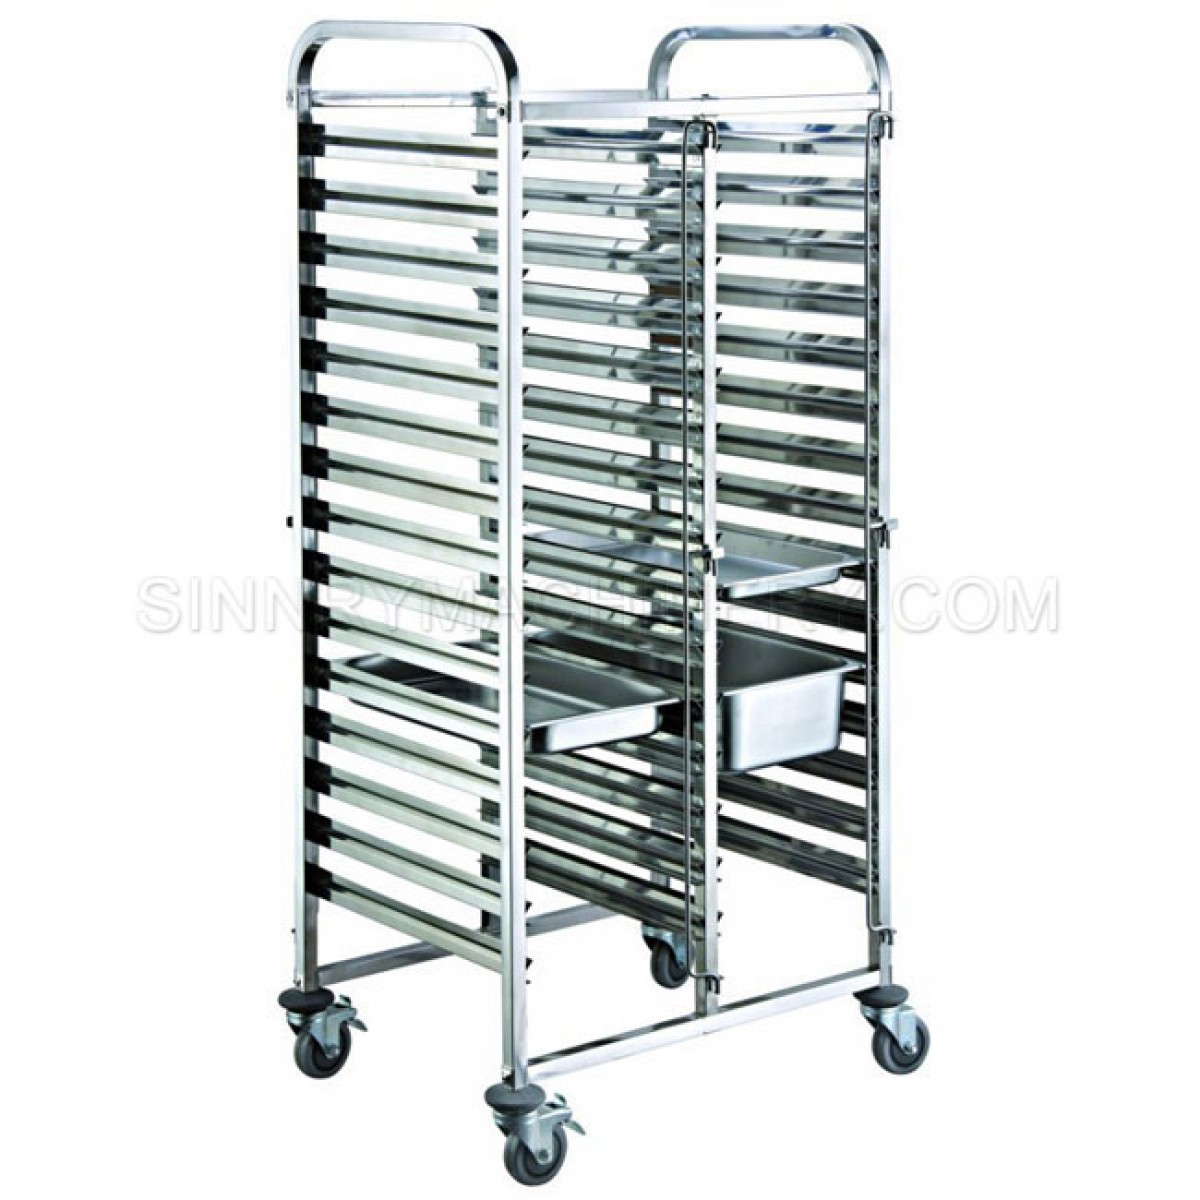 Bakery Rack 15 Trays 1 0mm L Letter Sn Br09a